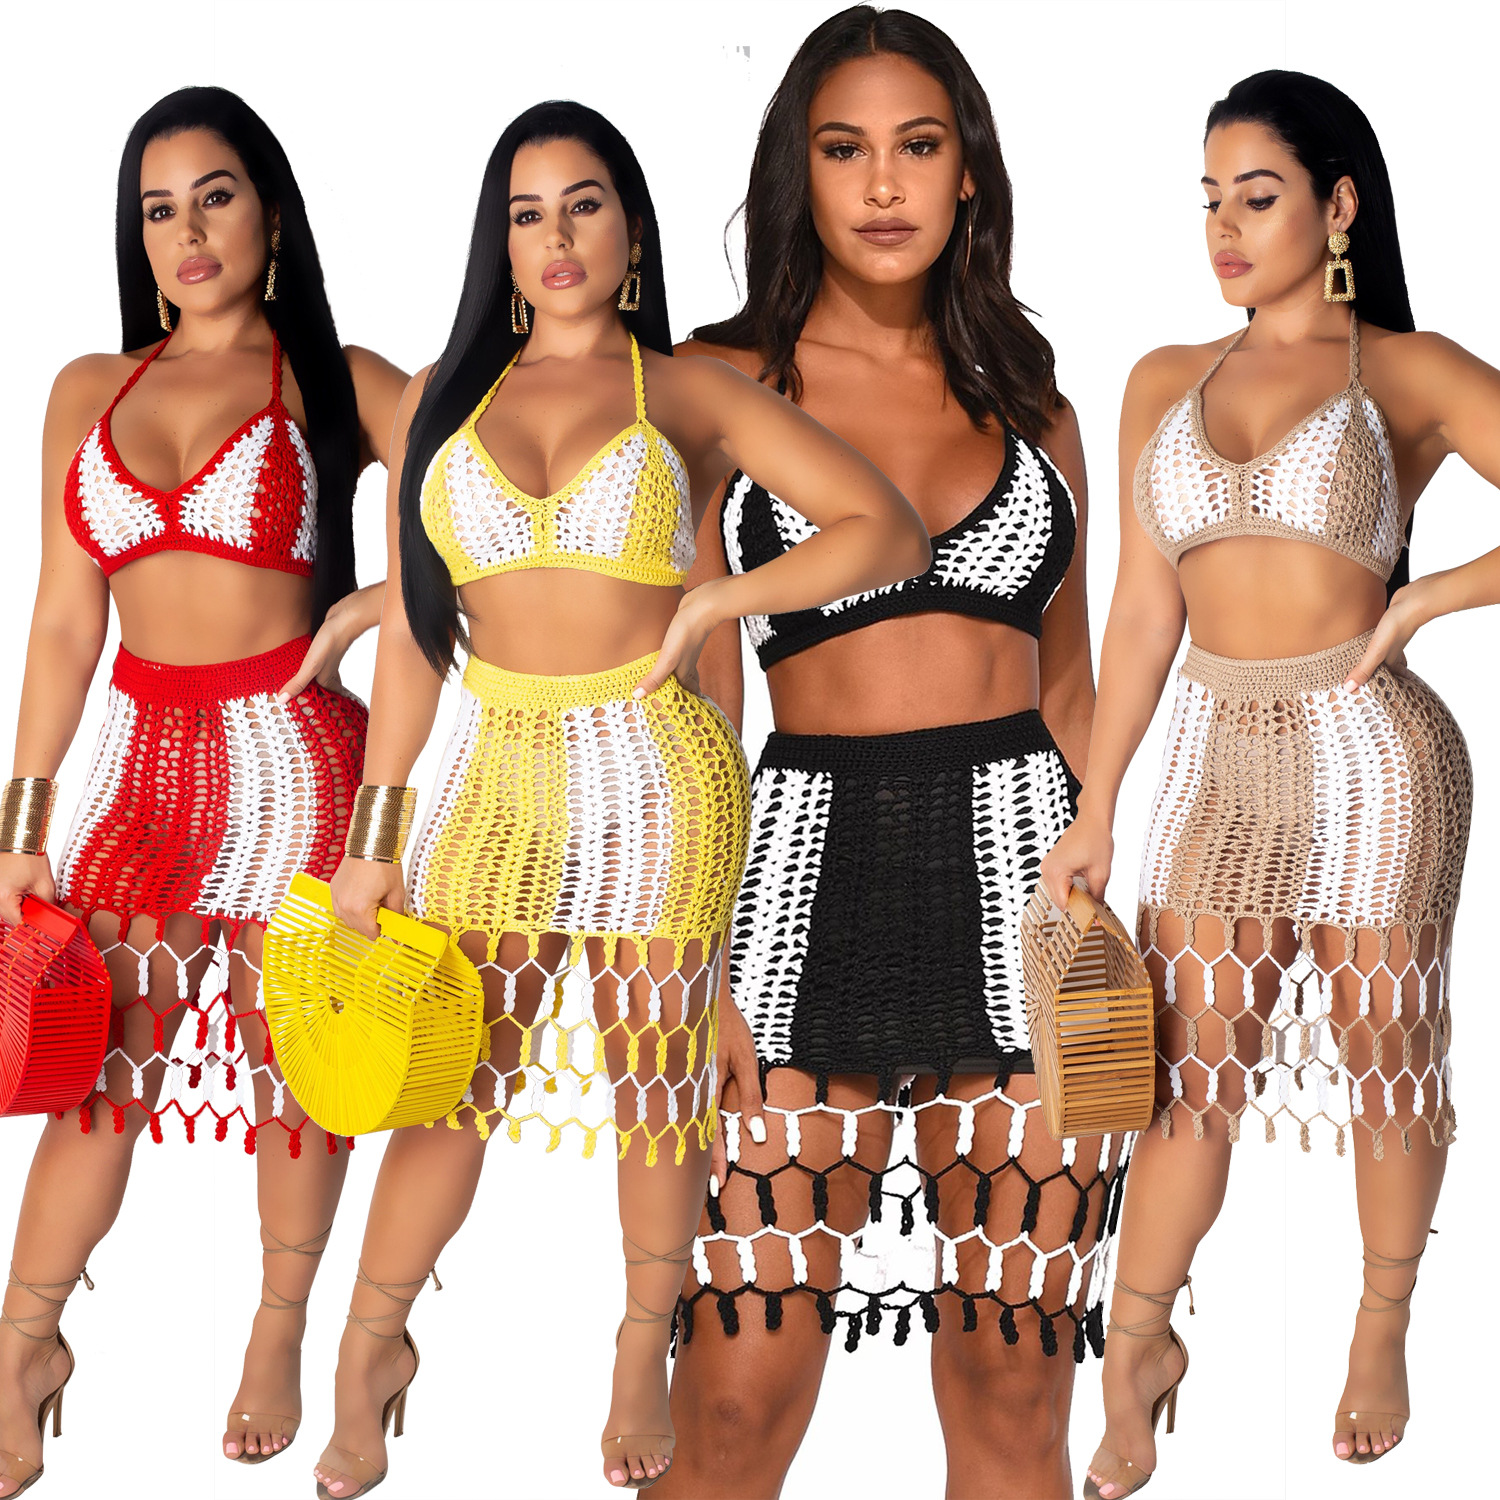 Two-tone Stitching Hand-woven Bikini Top Mesh Short Skirt Suit Sexy Casual Beach Ladies AJ4072 Four-color